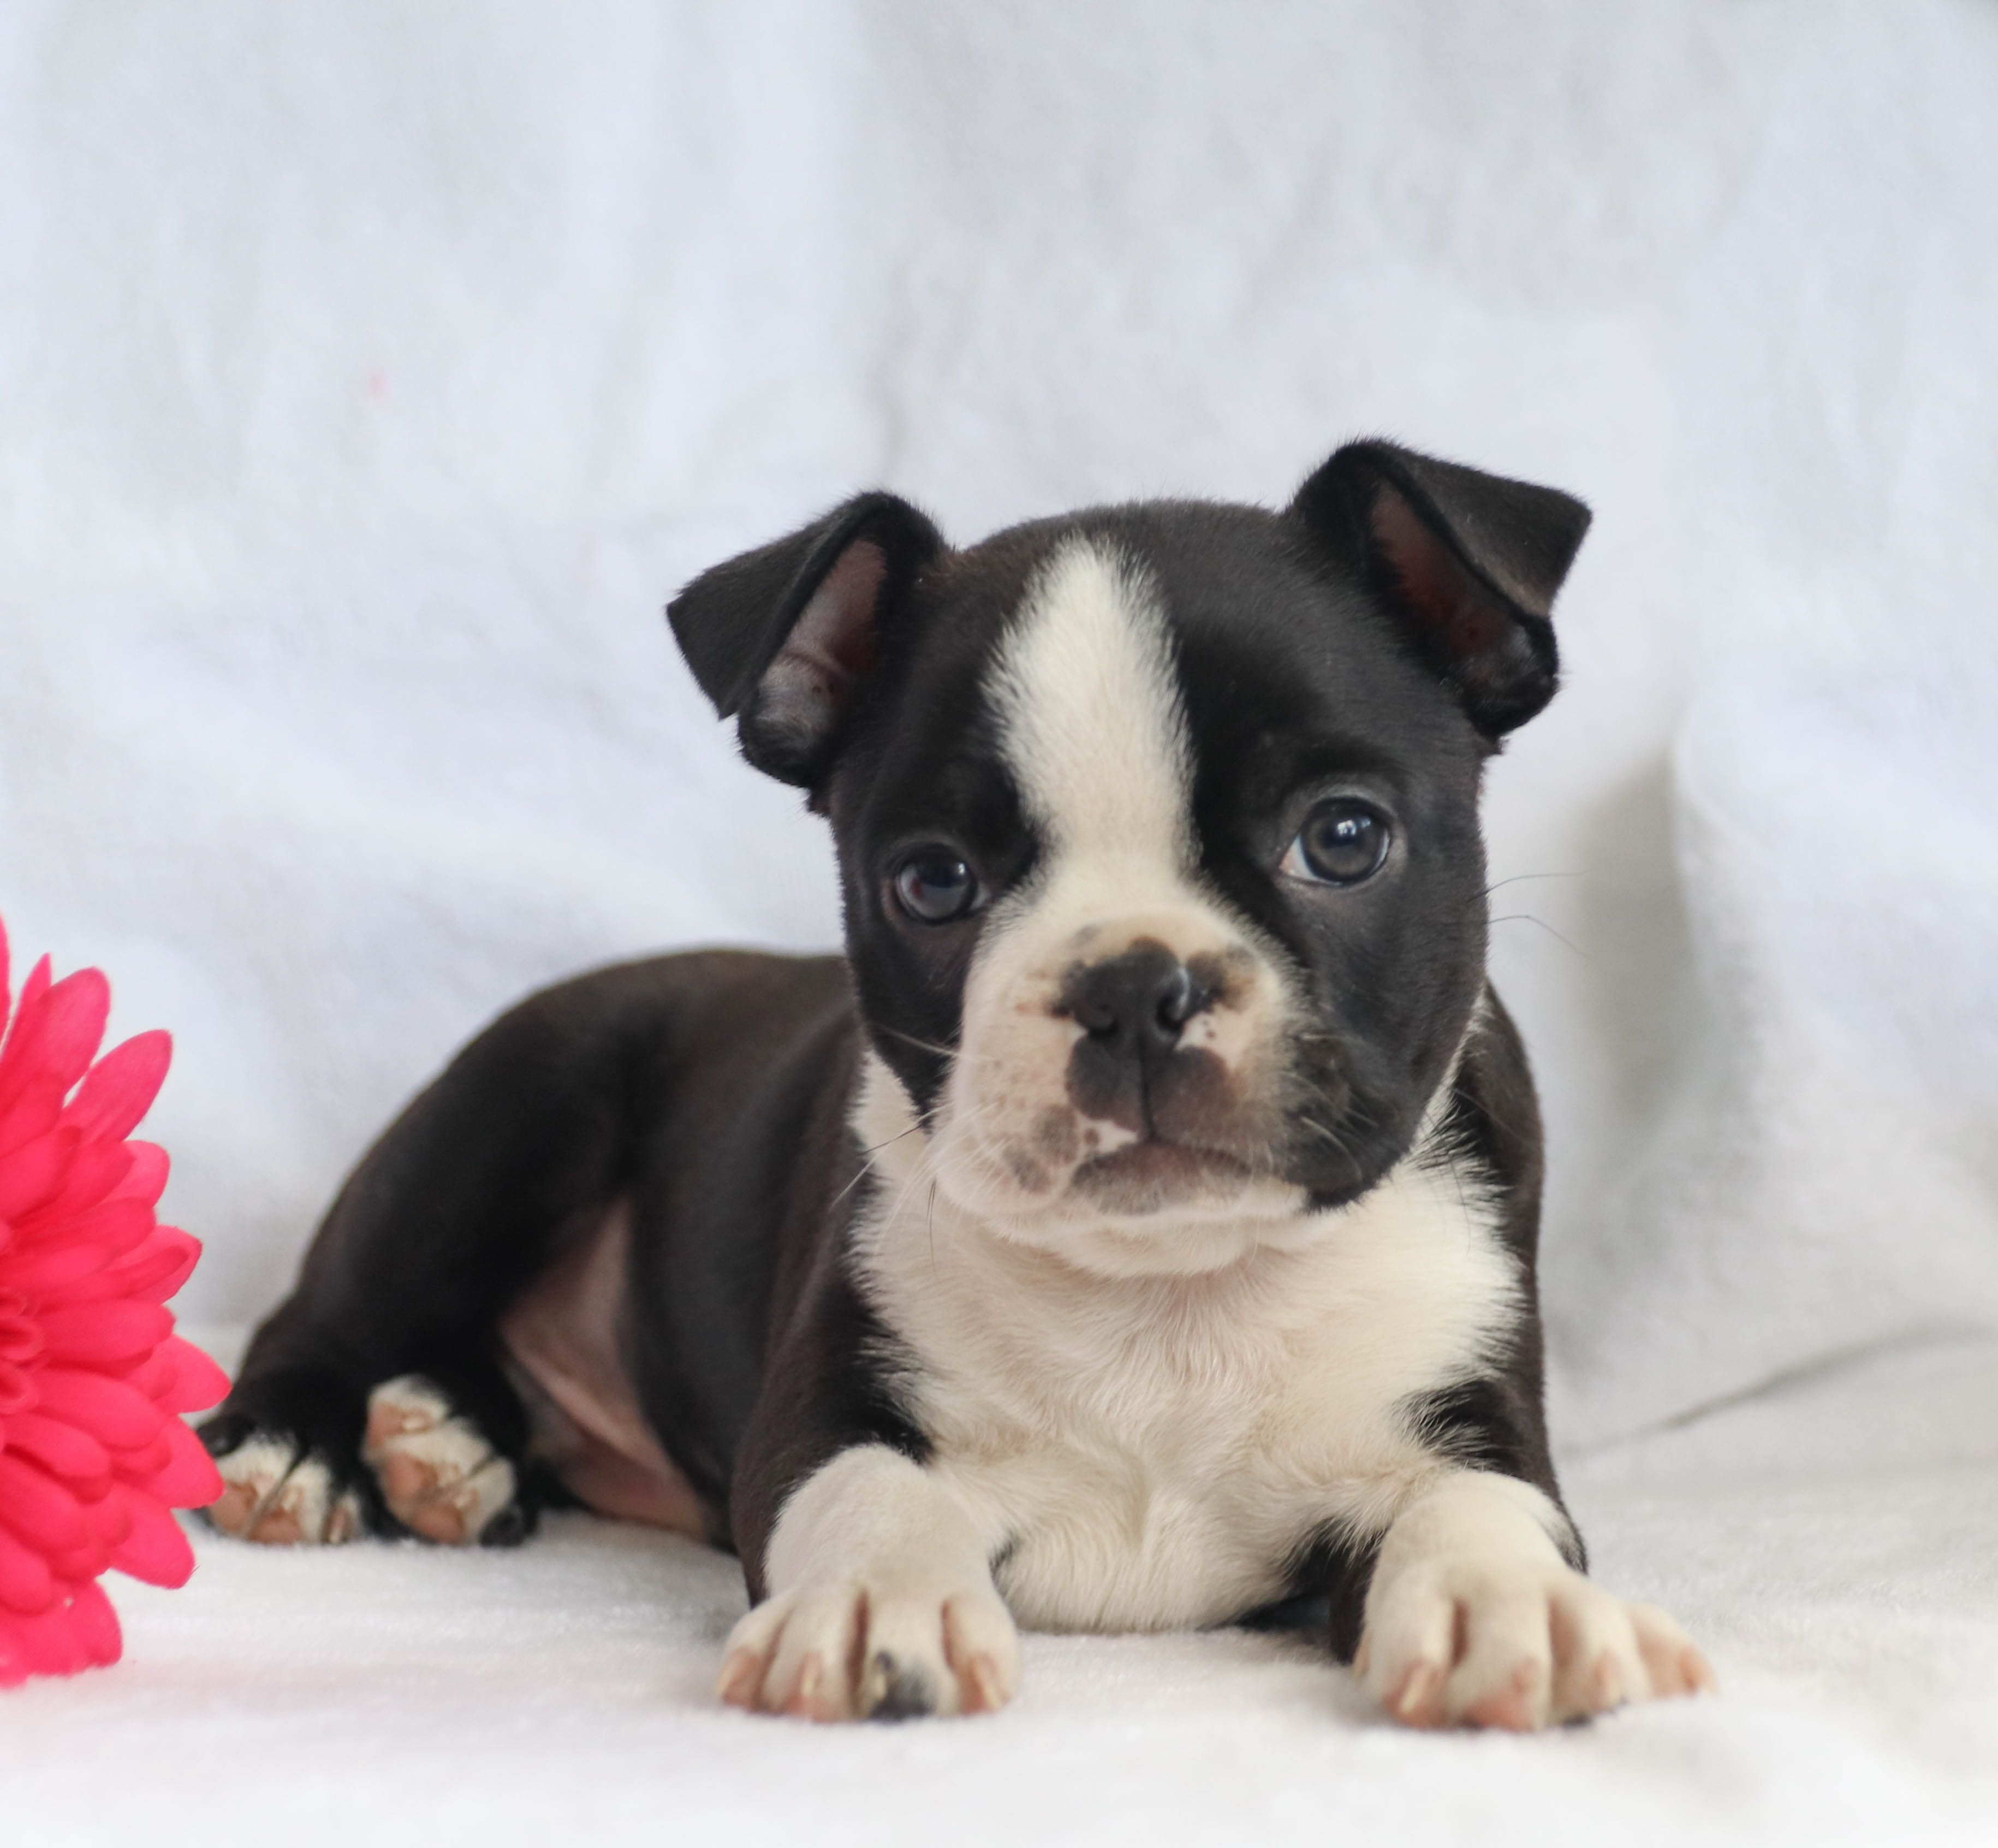 Pin By Sarah Withers On Boston Terriers And French Bulldogs Boston Terrier Puppy Boston Terrier Boston Terrier Love